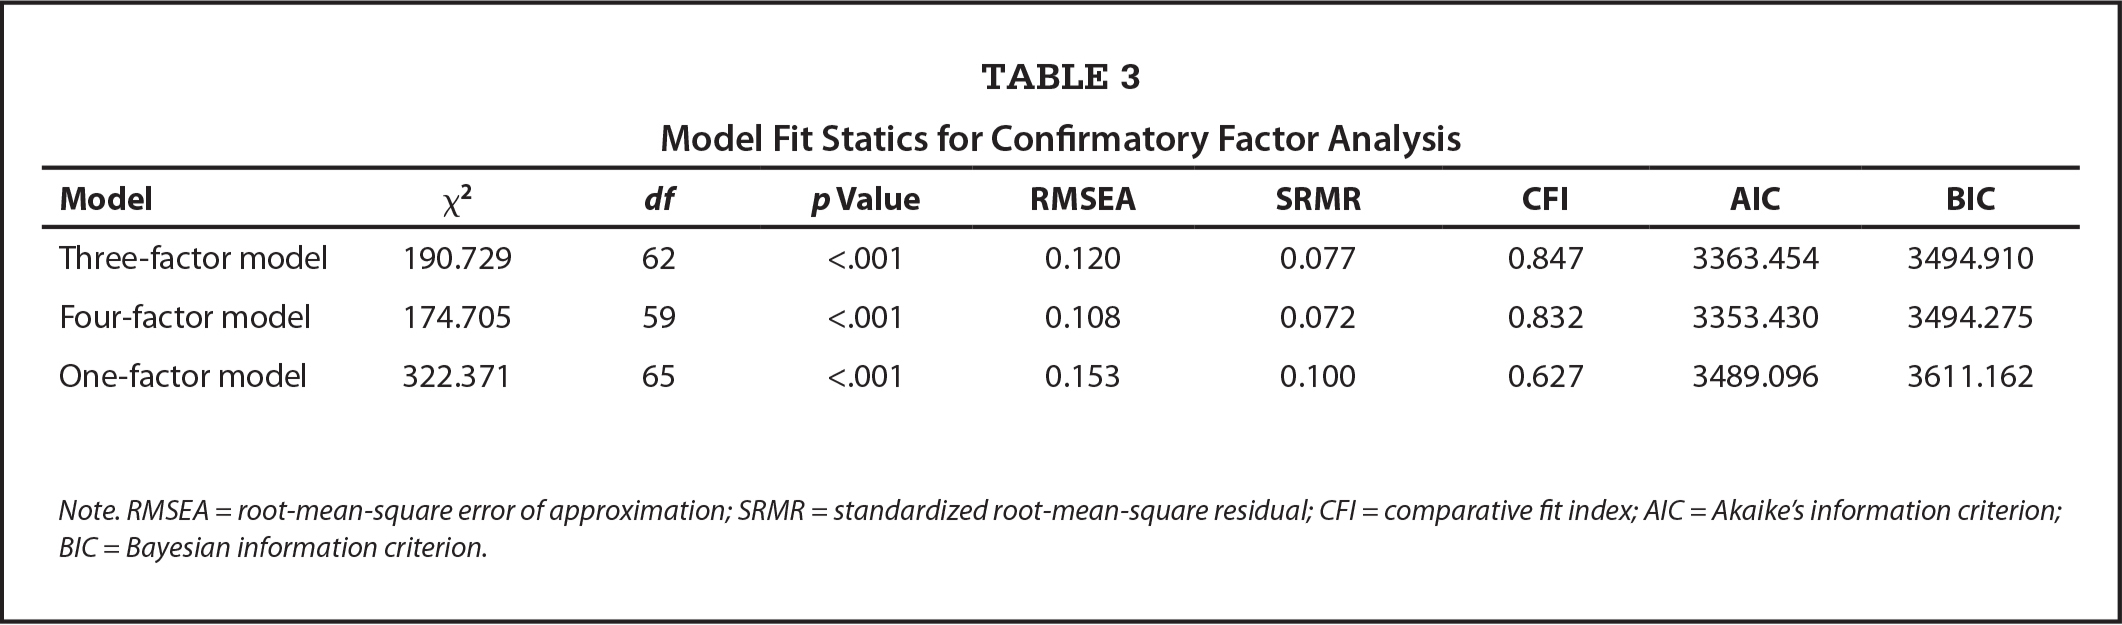 Model Fit Statics for Confirmatory Factor Analysis